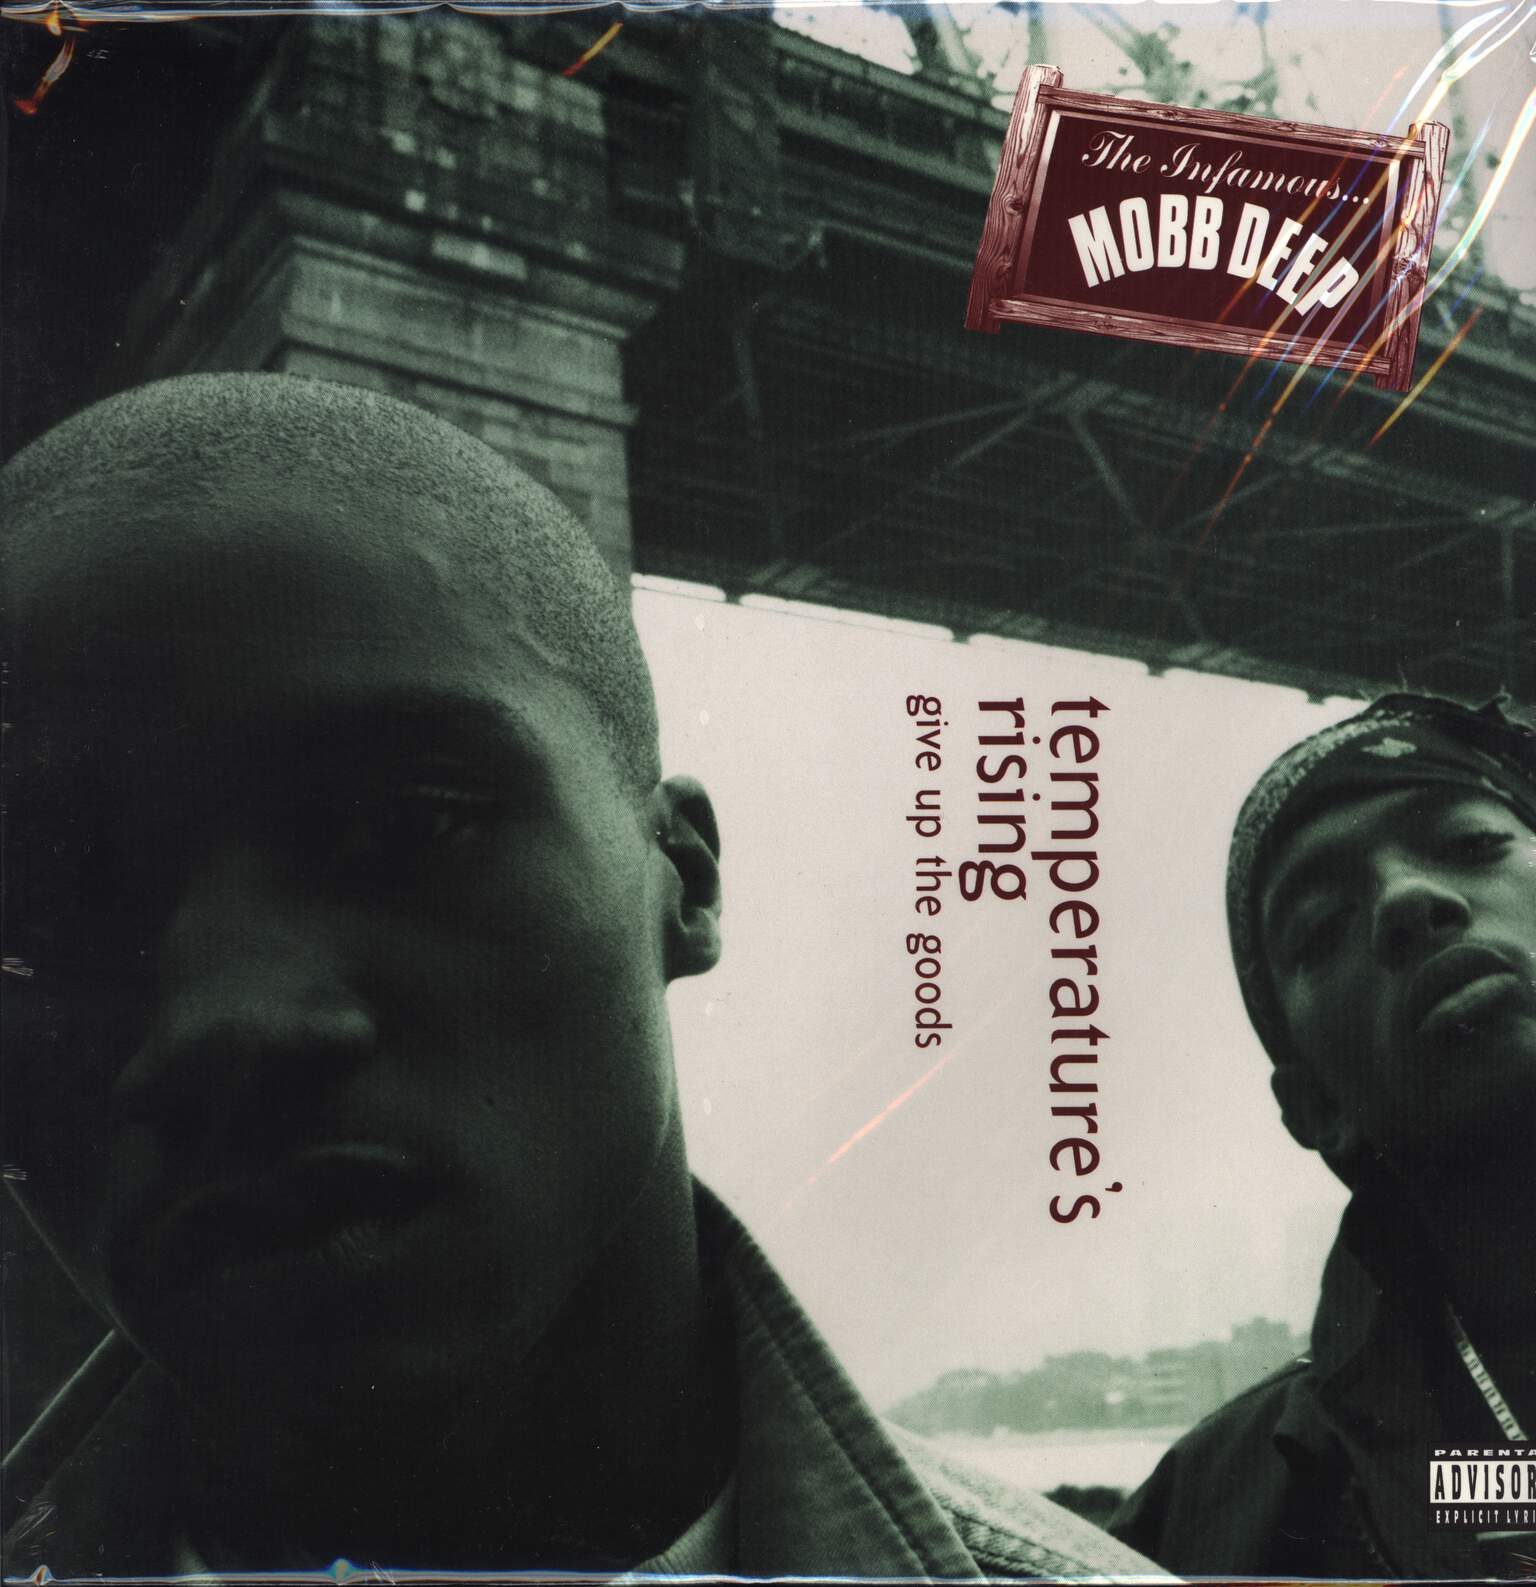 "Mobb Deep: Temperature's Rising / Give Up The Goods, 12"" Maxi Single (Vinyl)"